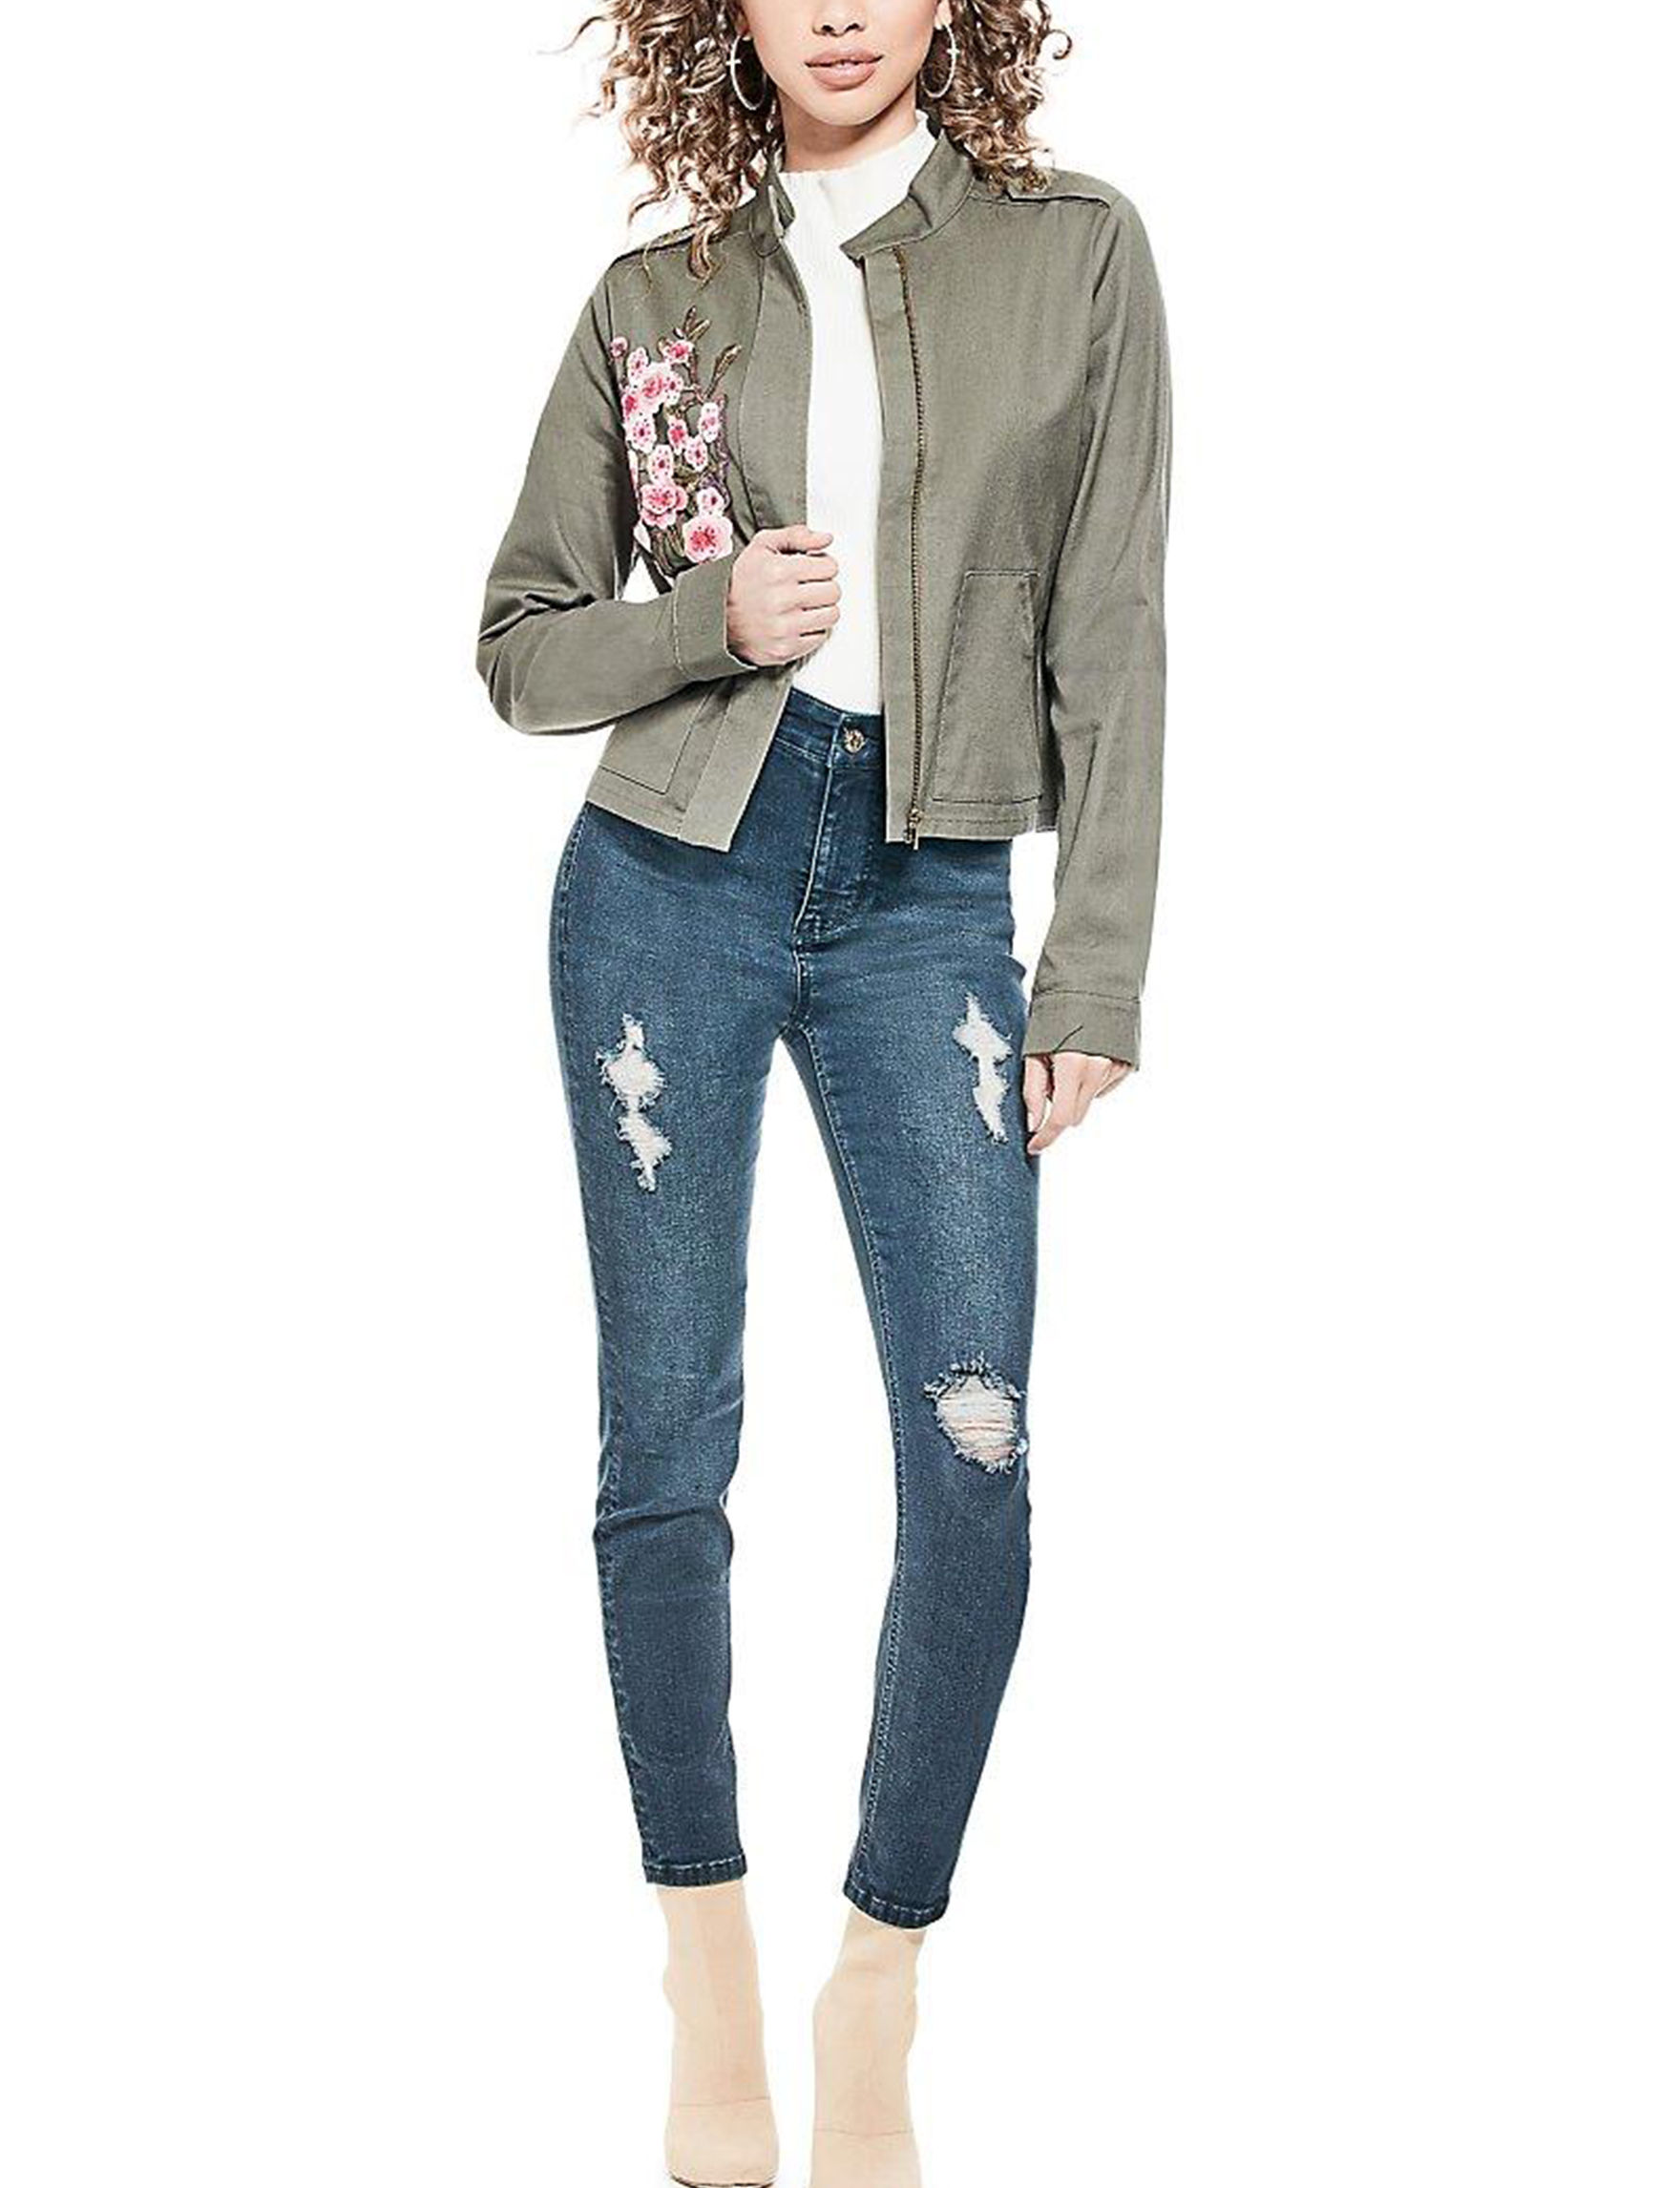 G by Guess Olive Lightweight Jackets & Blazers